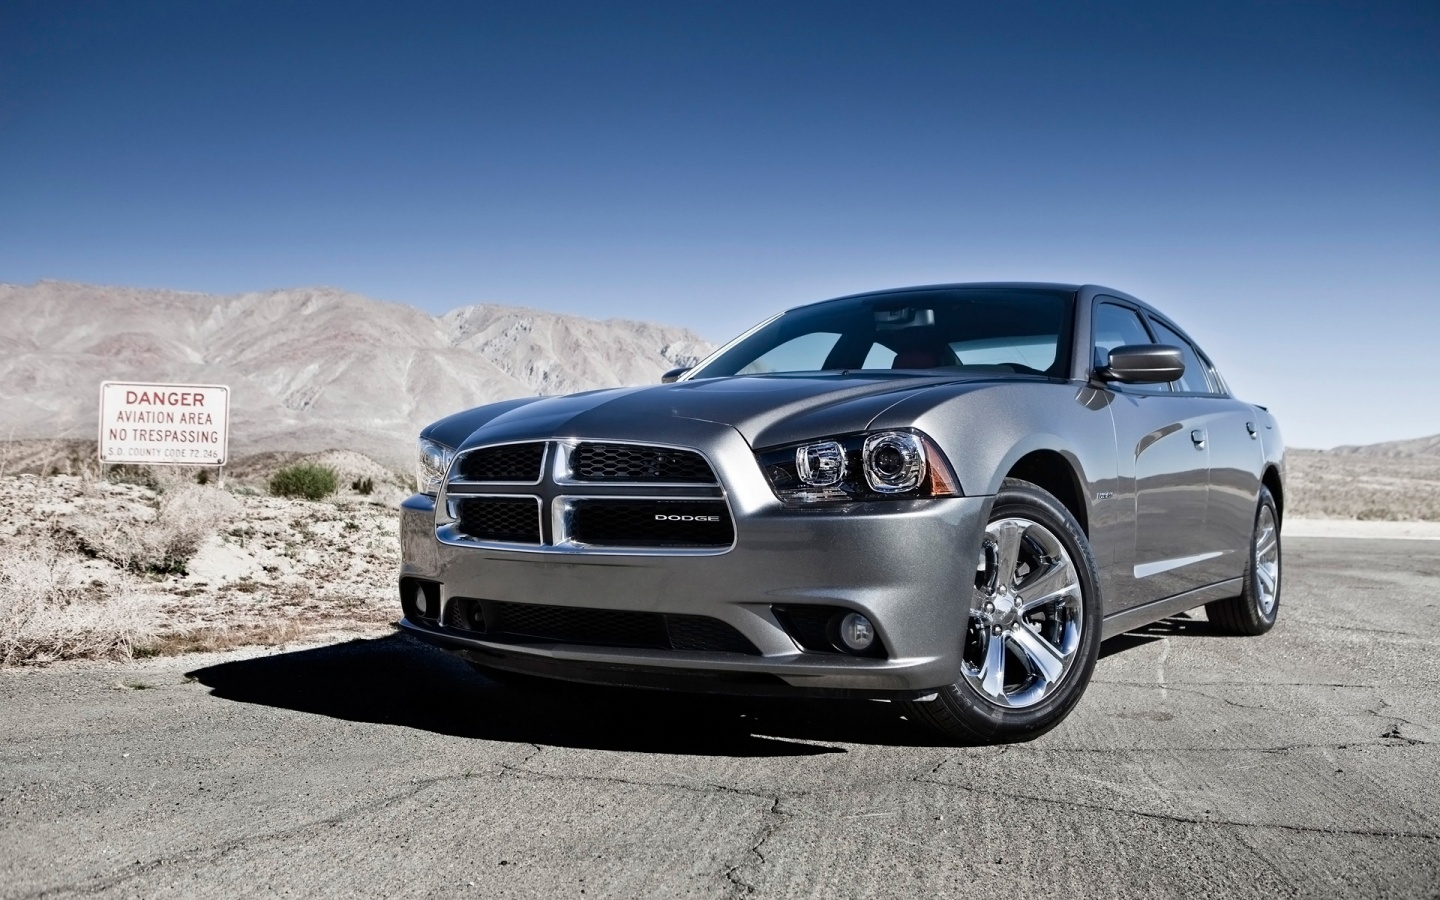 2012 Dodge Charger RT Wallpaper HD Car Wallpapers 1440x900